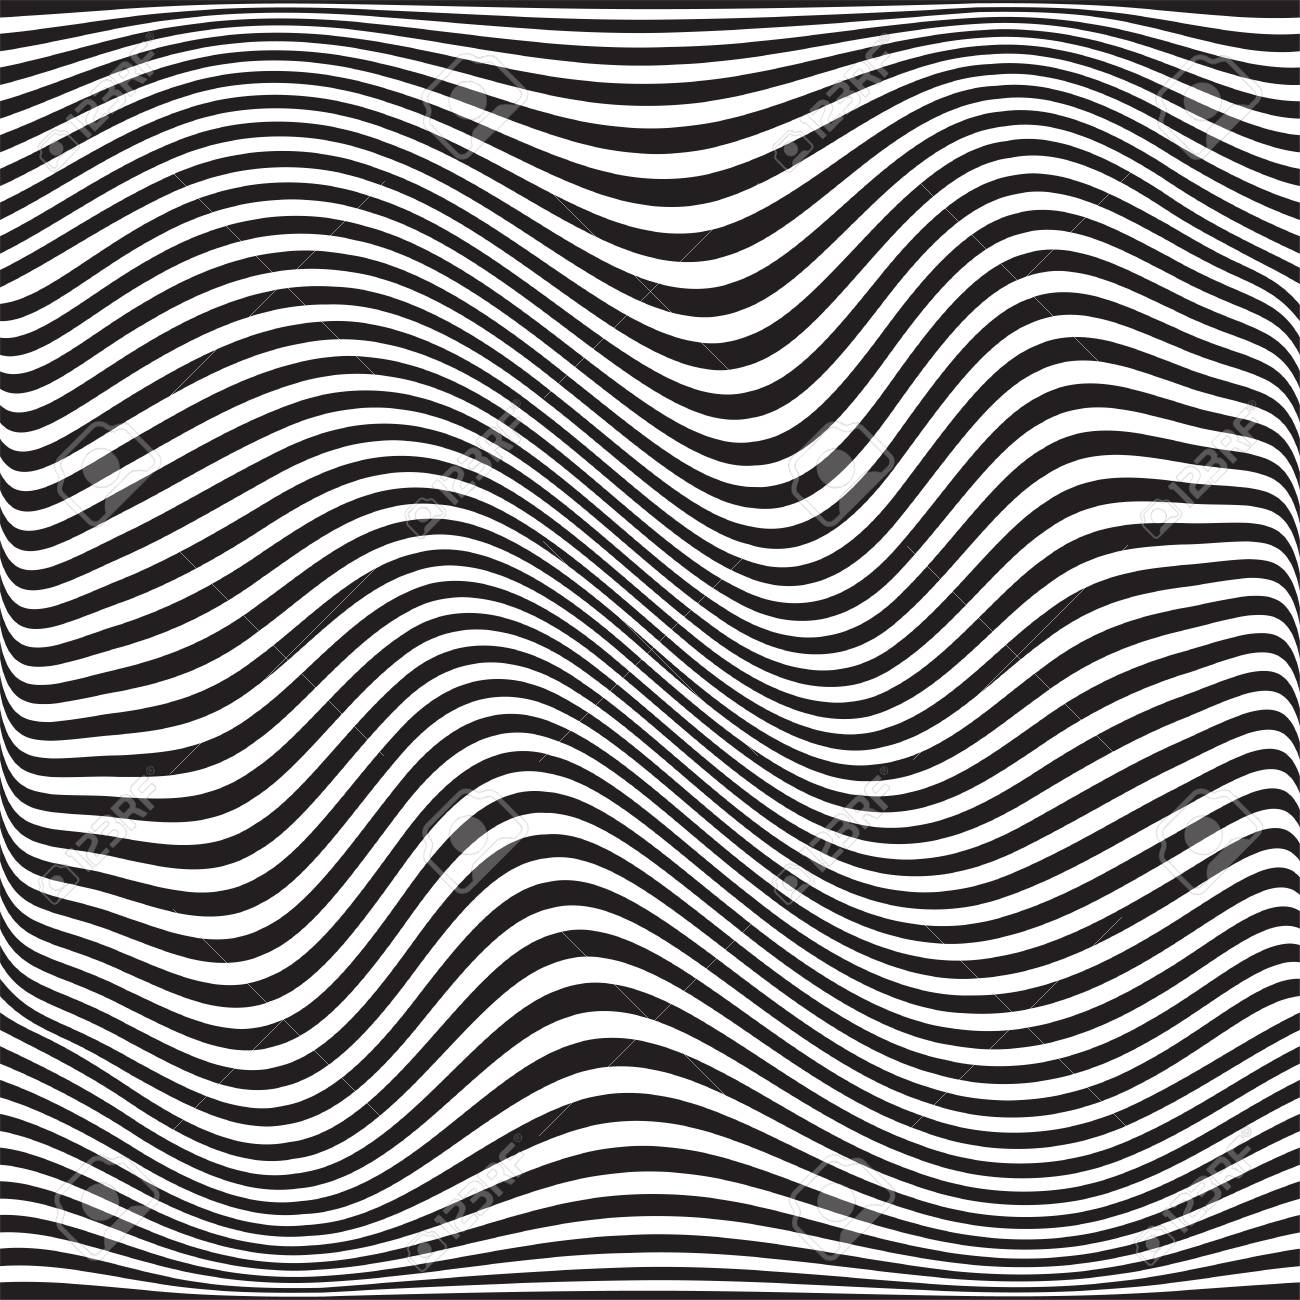 Wavy Geometric Pattern Vector Abstract Black White Background